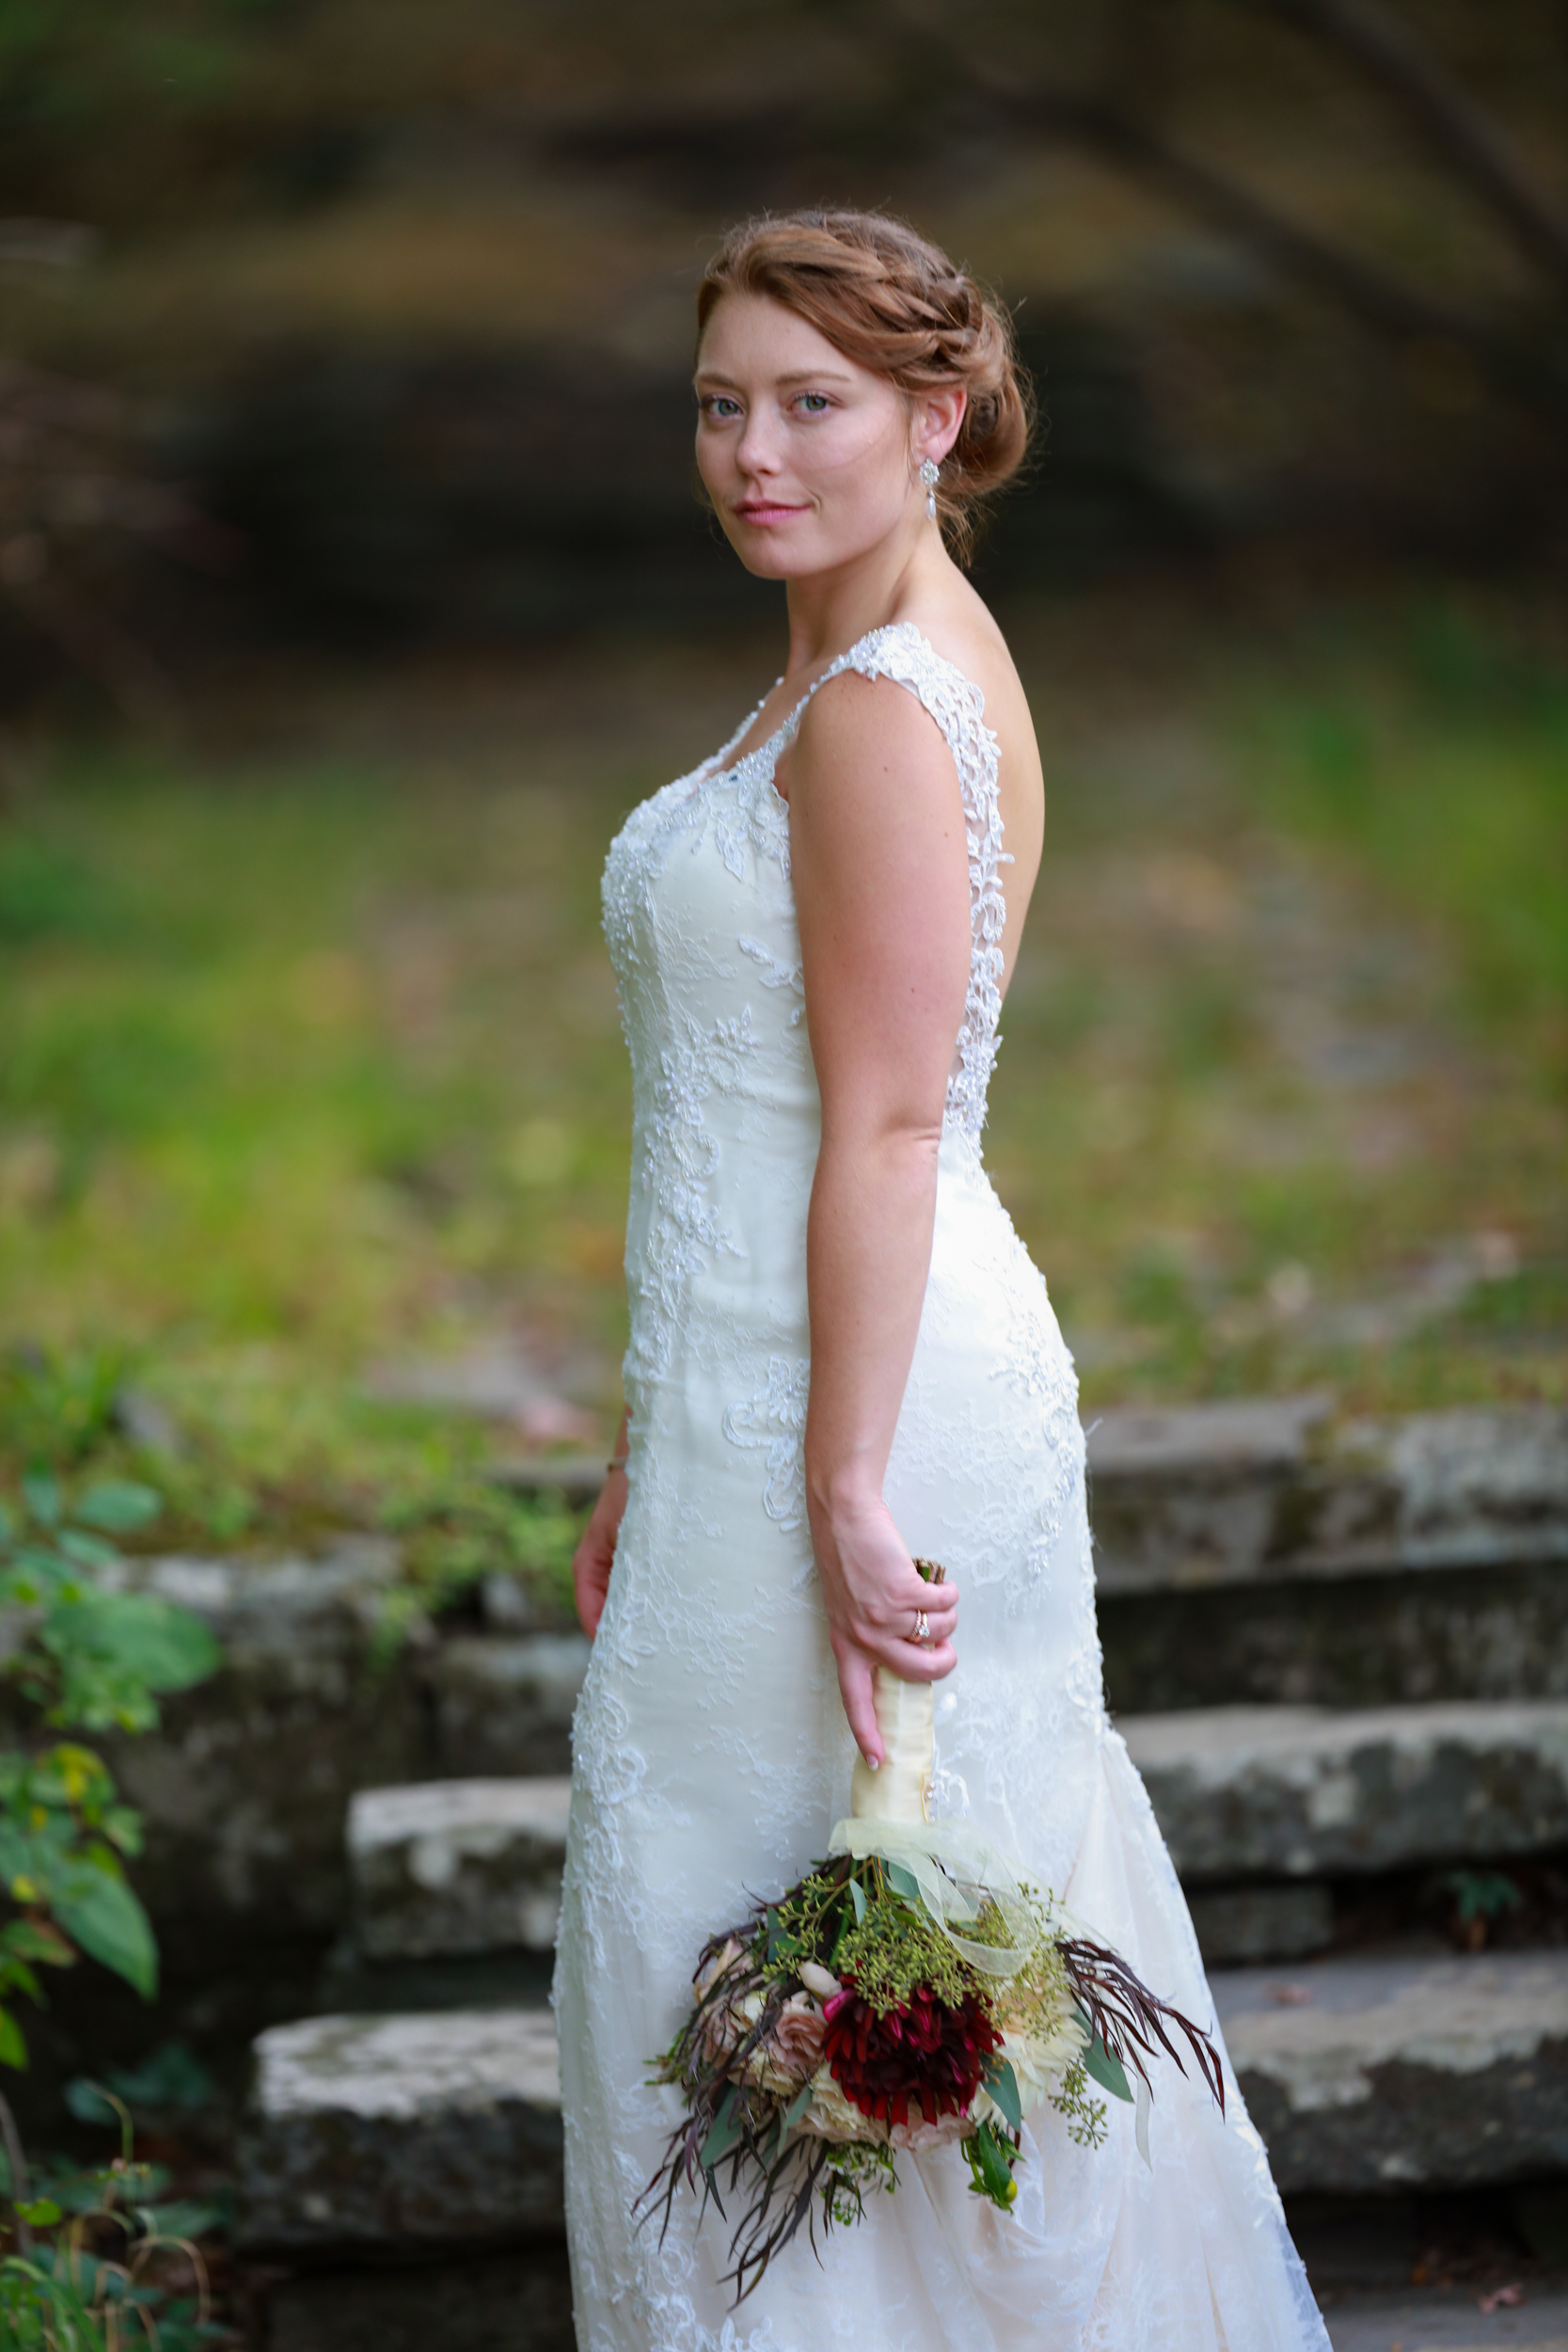 A Saugerties, NY Bride at her Wedding in Saugerties, NY